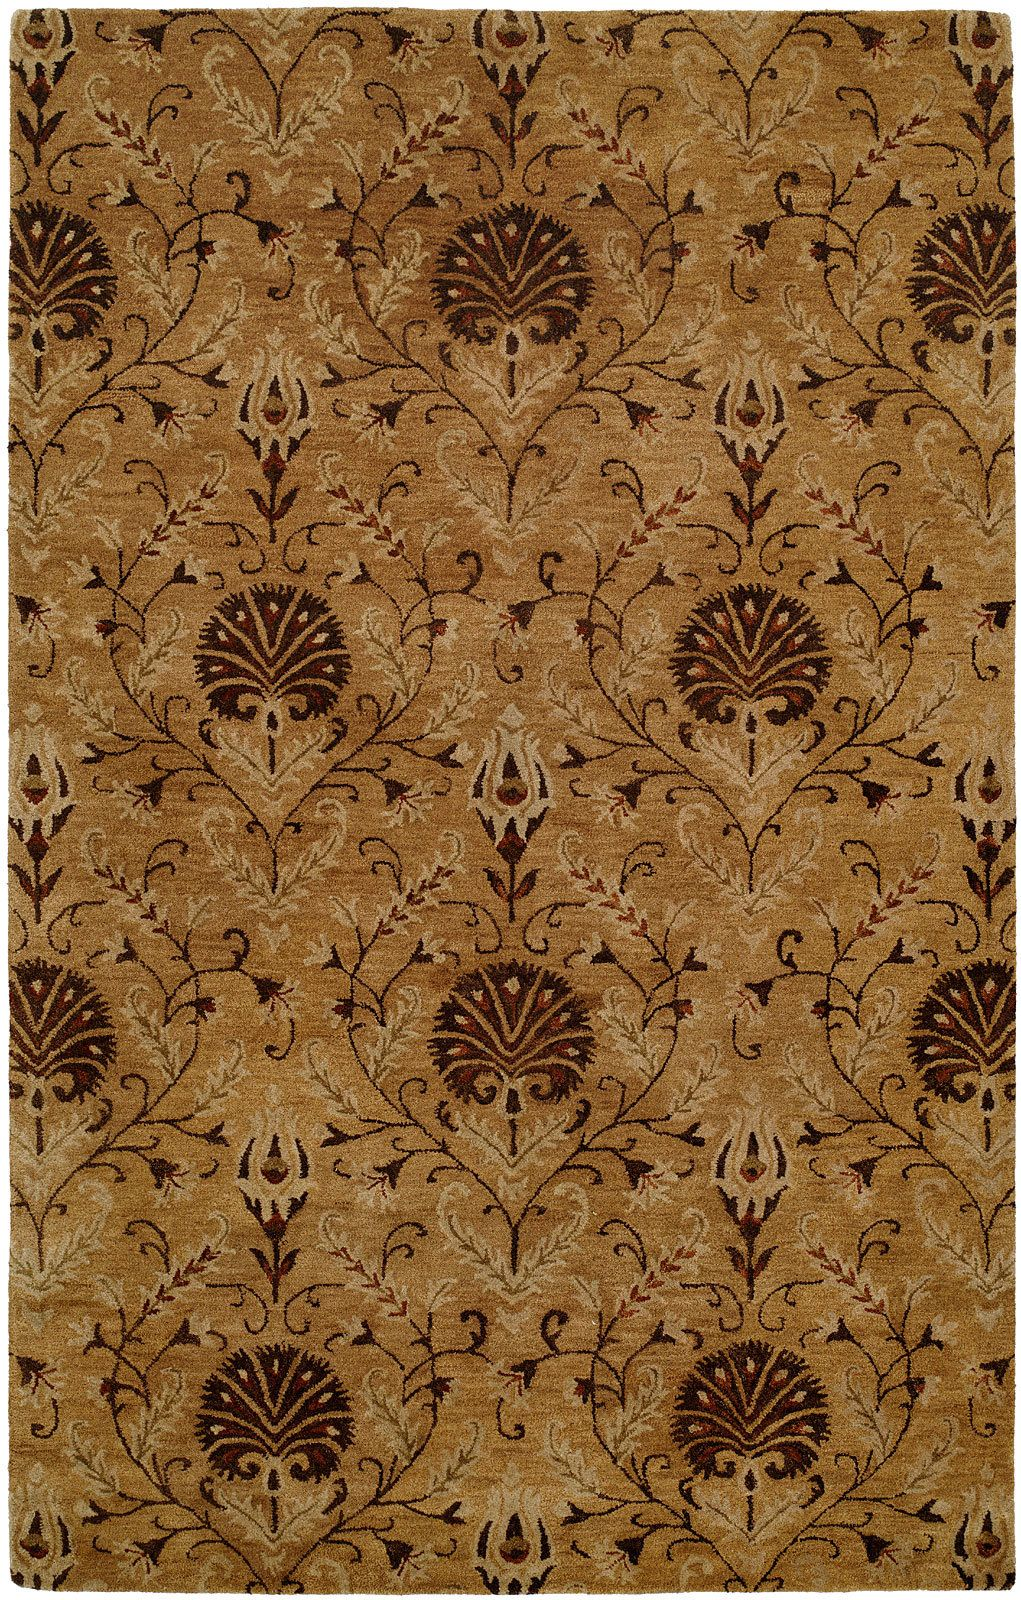 Handtuft Teppiche Simpson Hand Tufted Ivory Area Rug Products Baum